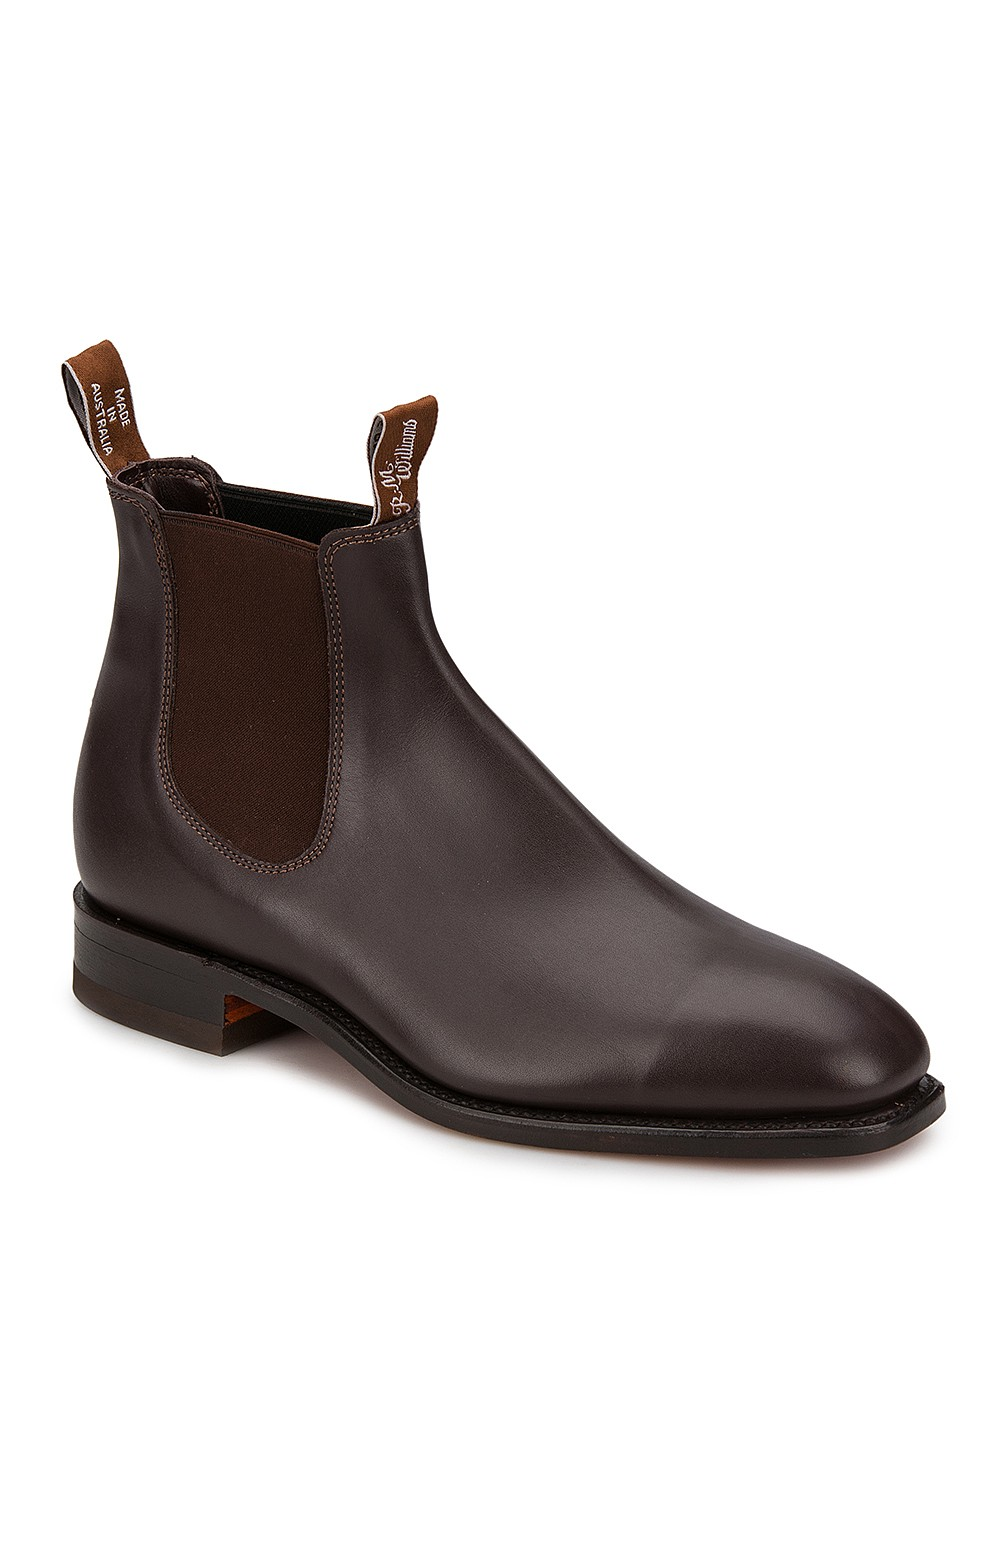 9a82c009e4b2 Mens R.M. Williams Comfort Craftsman Boot   Men's Leather Shoes & Boots    House Of Bruar